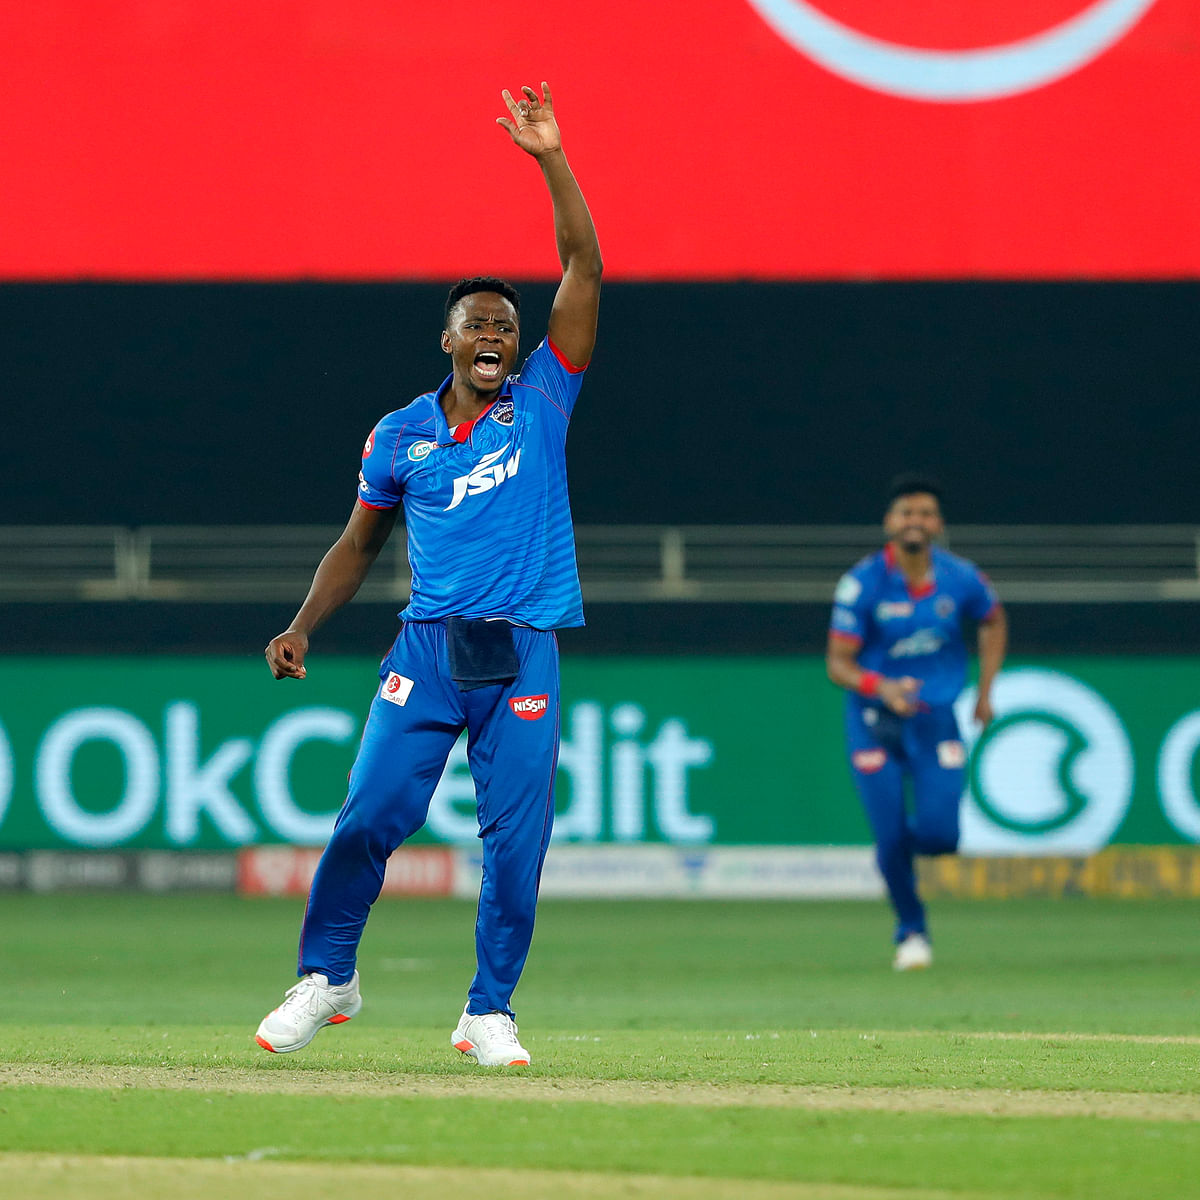 IPL 2020: Purple Cap holder Kagiso Rabada says sportspersons need to speak up on racism